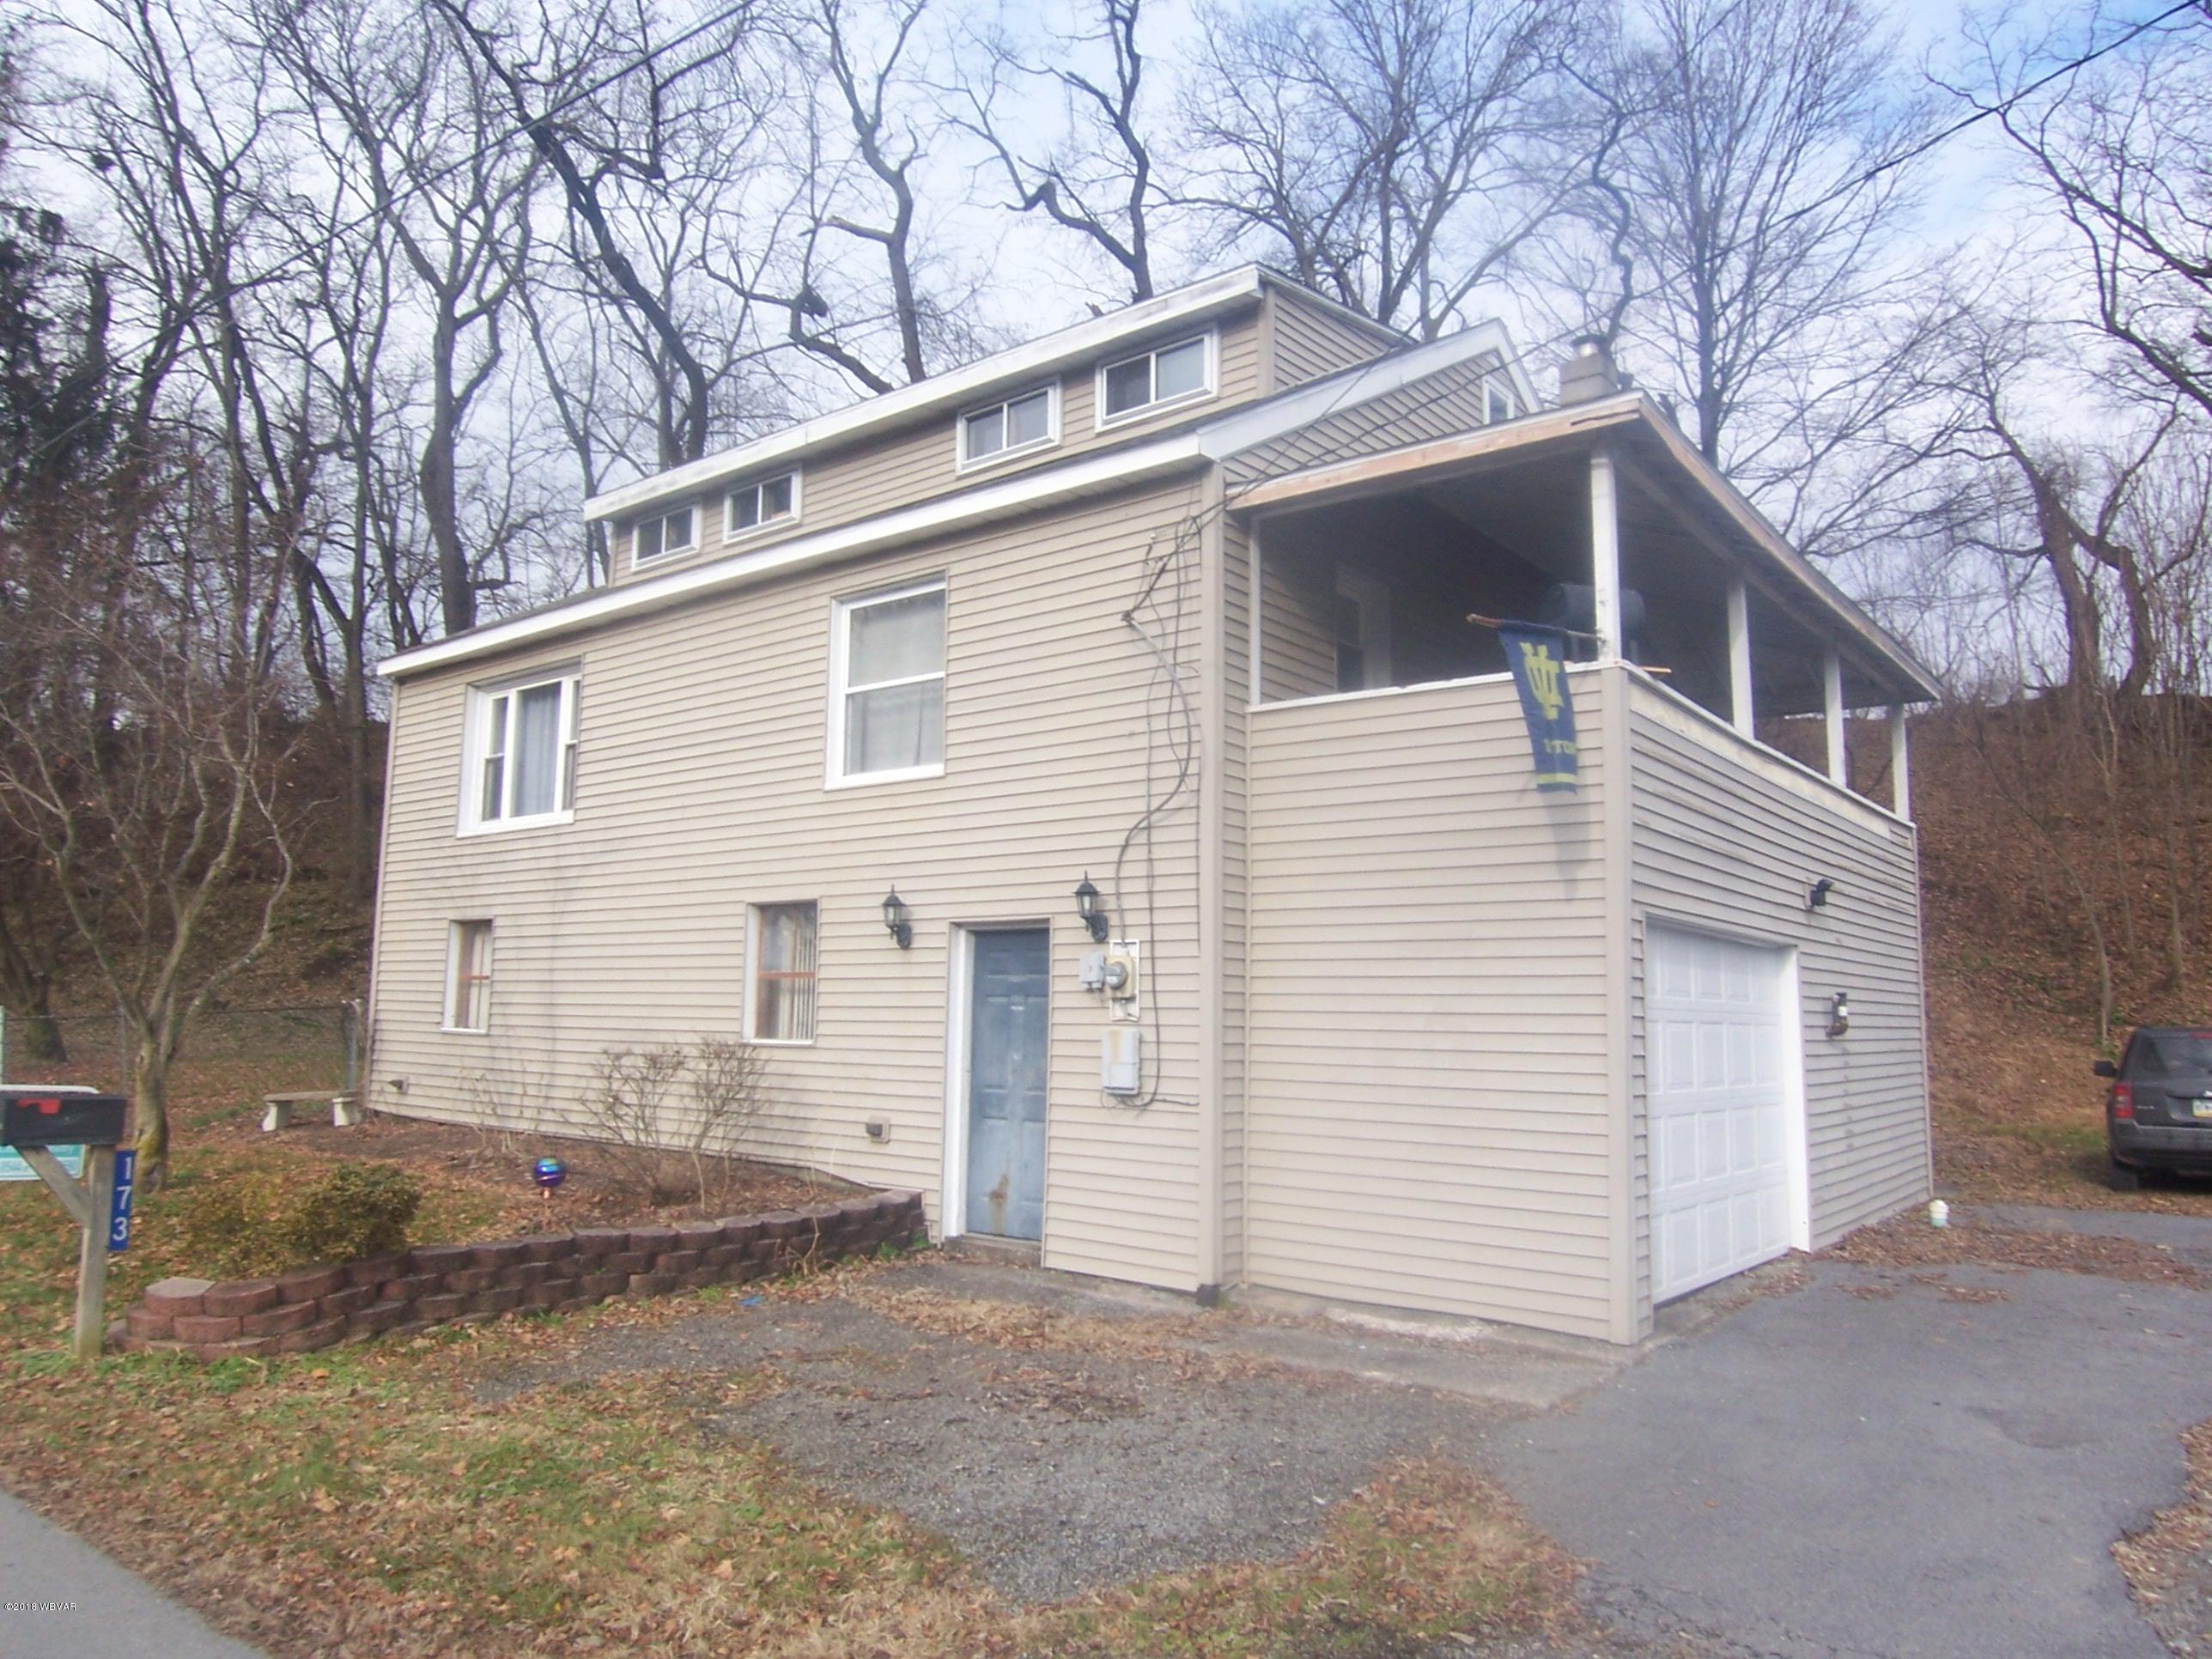 173 ALLEGHENY STREET,Lock Haven,PA 17745,3 Bedrooms Bedrooms,1 BathroomBathrooms,Residential,ALLEGHENY,WB-86051